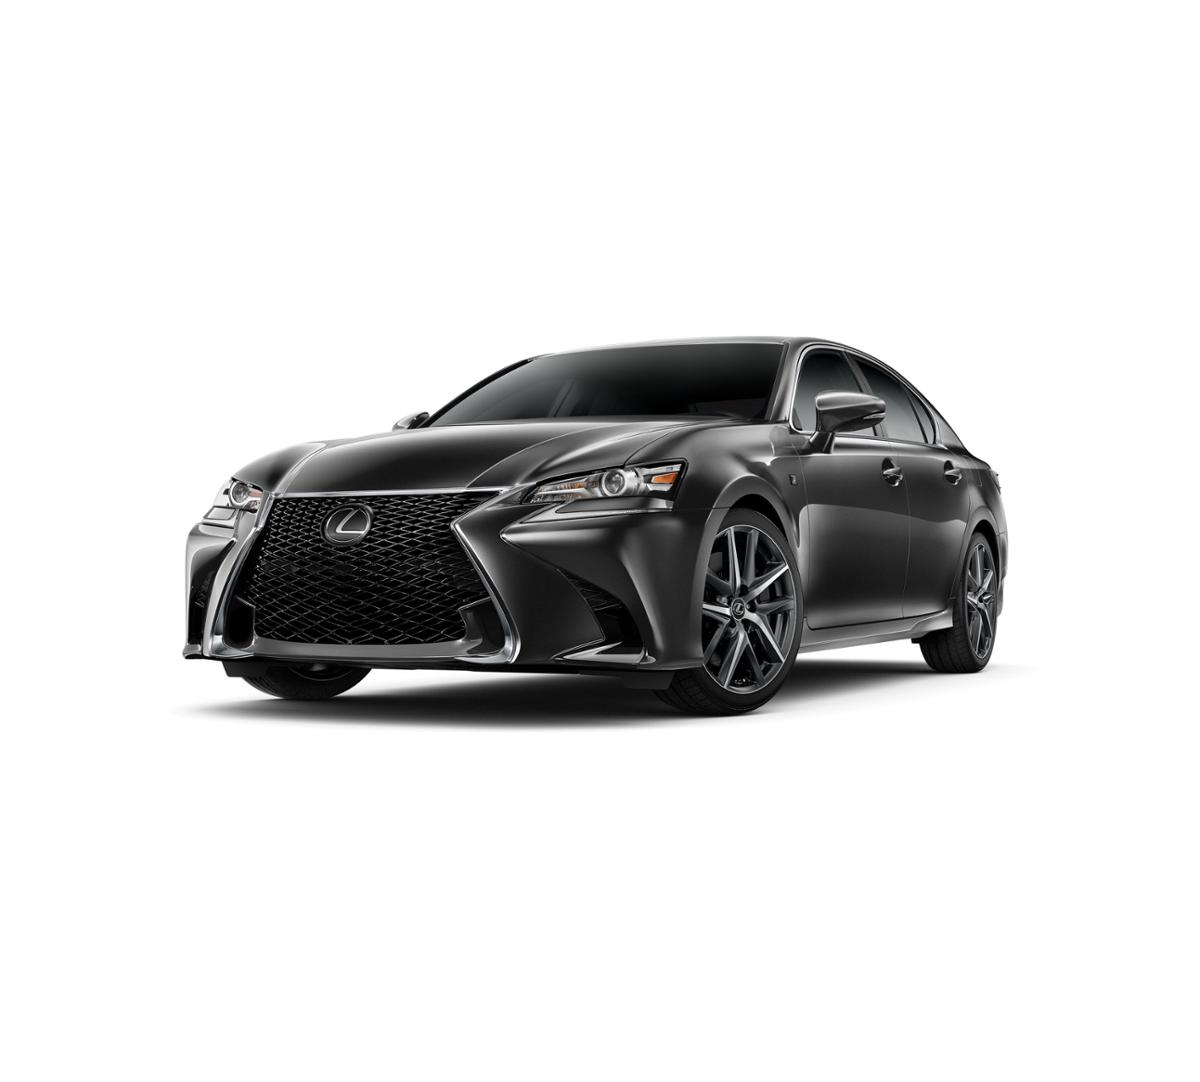 2018 Lexus GS 350 Vehicle Photo in Torrance, CA 90505